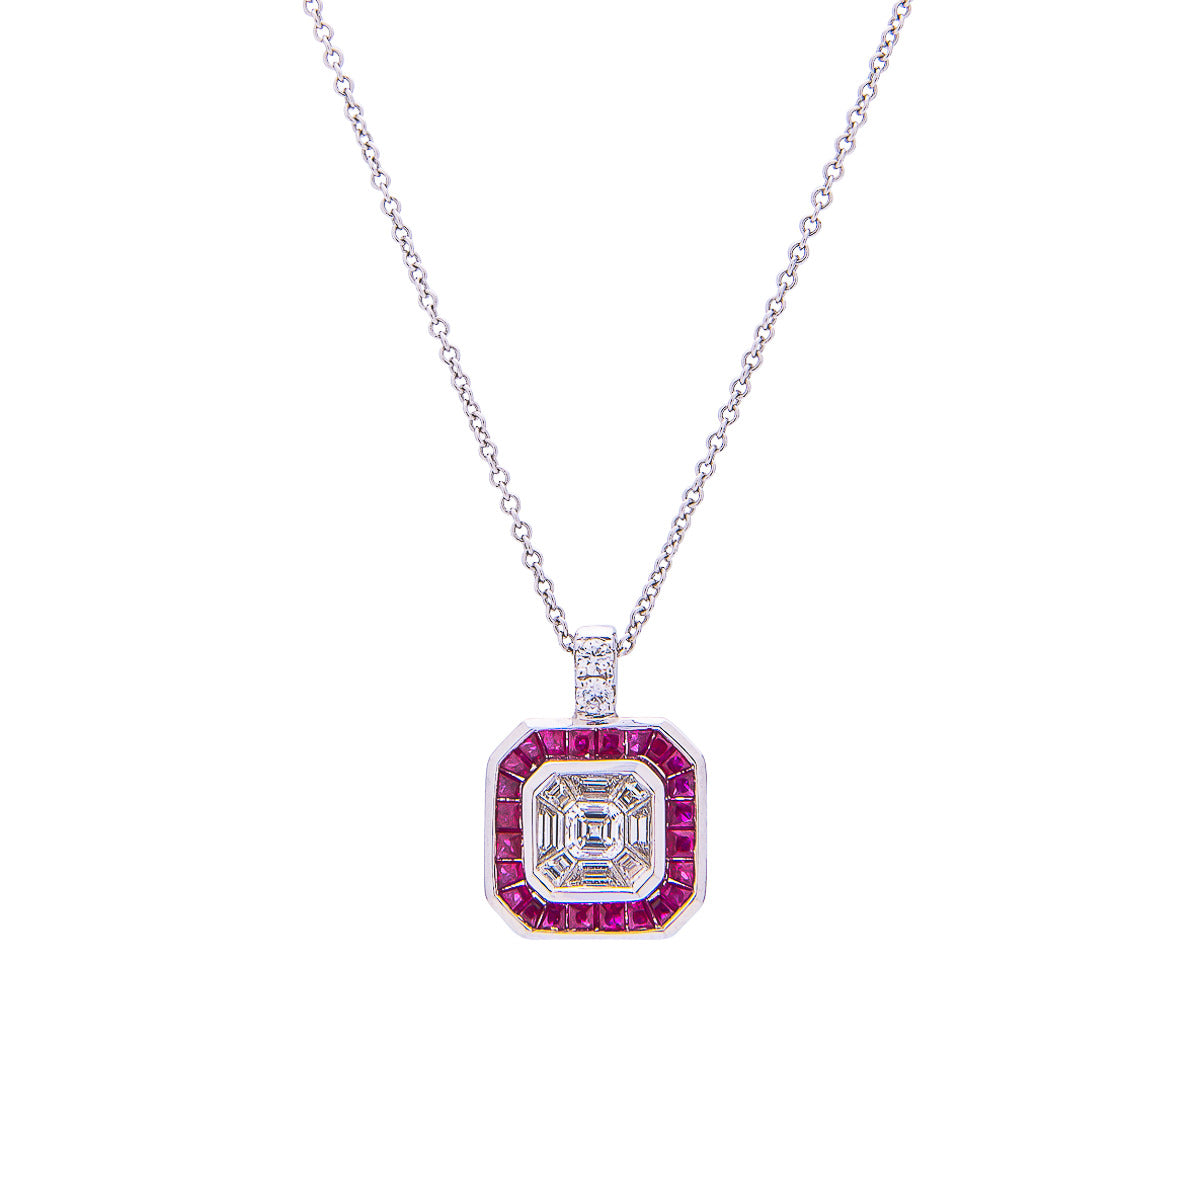 Sabel Collection 18K White Multi-Shape Diamond with Ruby Accent Pendant Necklace